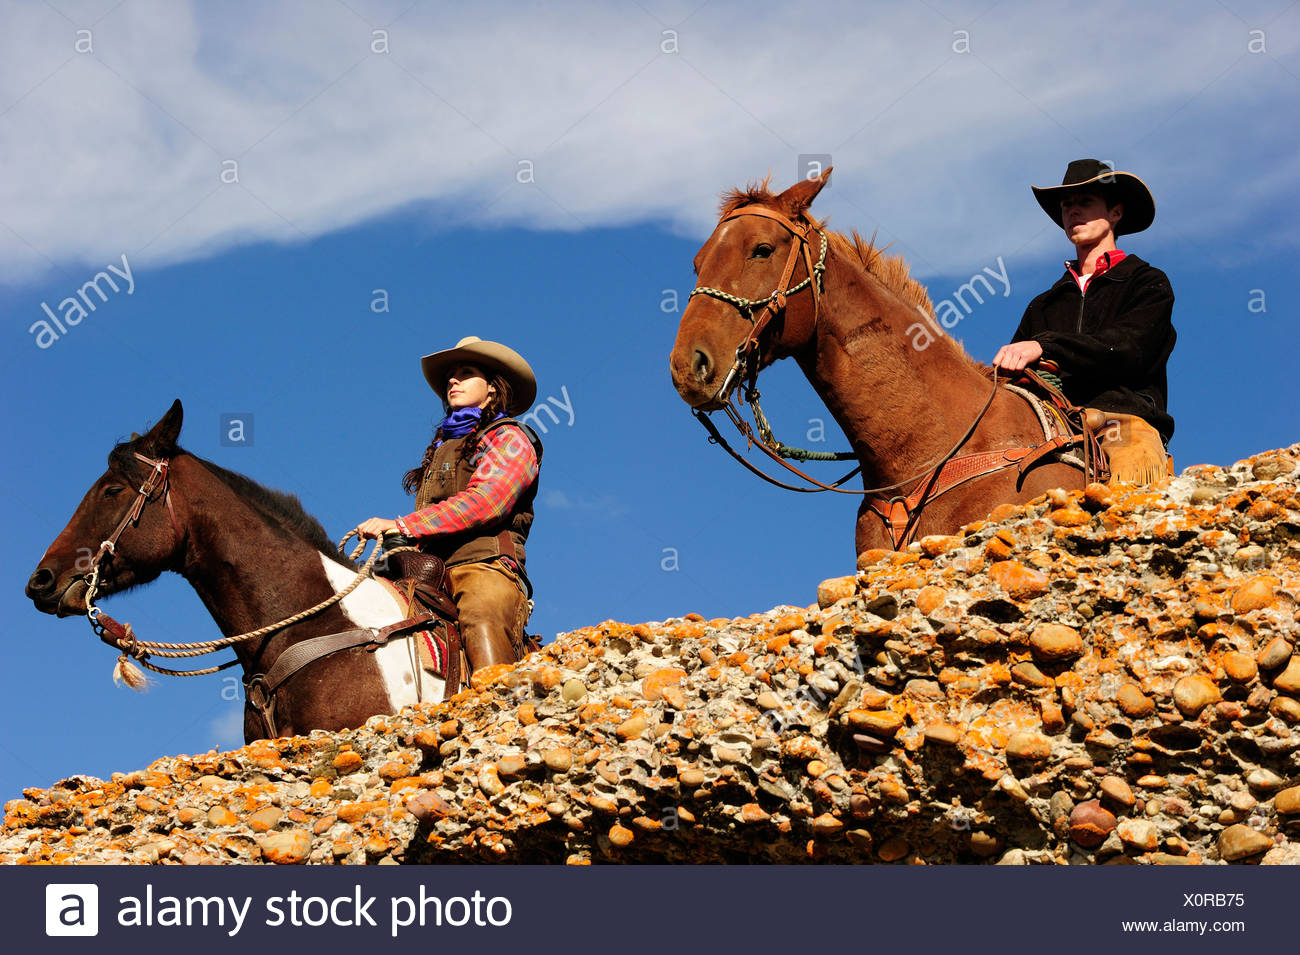 Cowboy and cowgirl on horses looking into the distance, Saskatchewan, Canada, North America - Stock Image